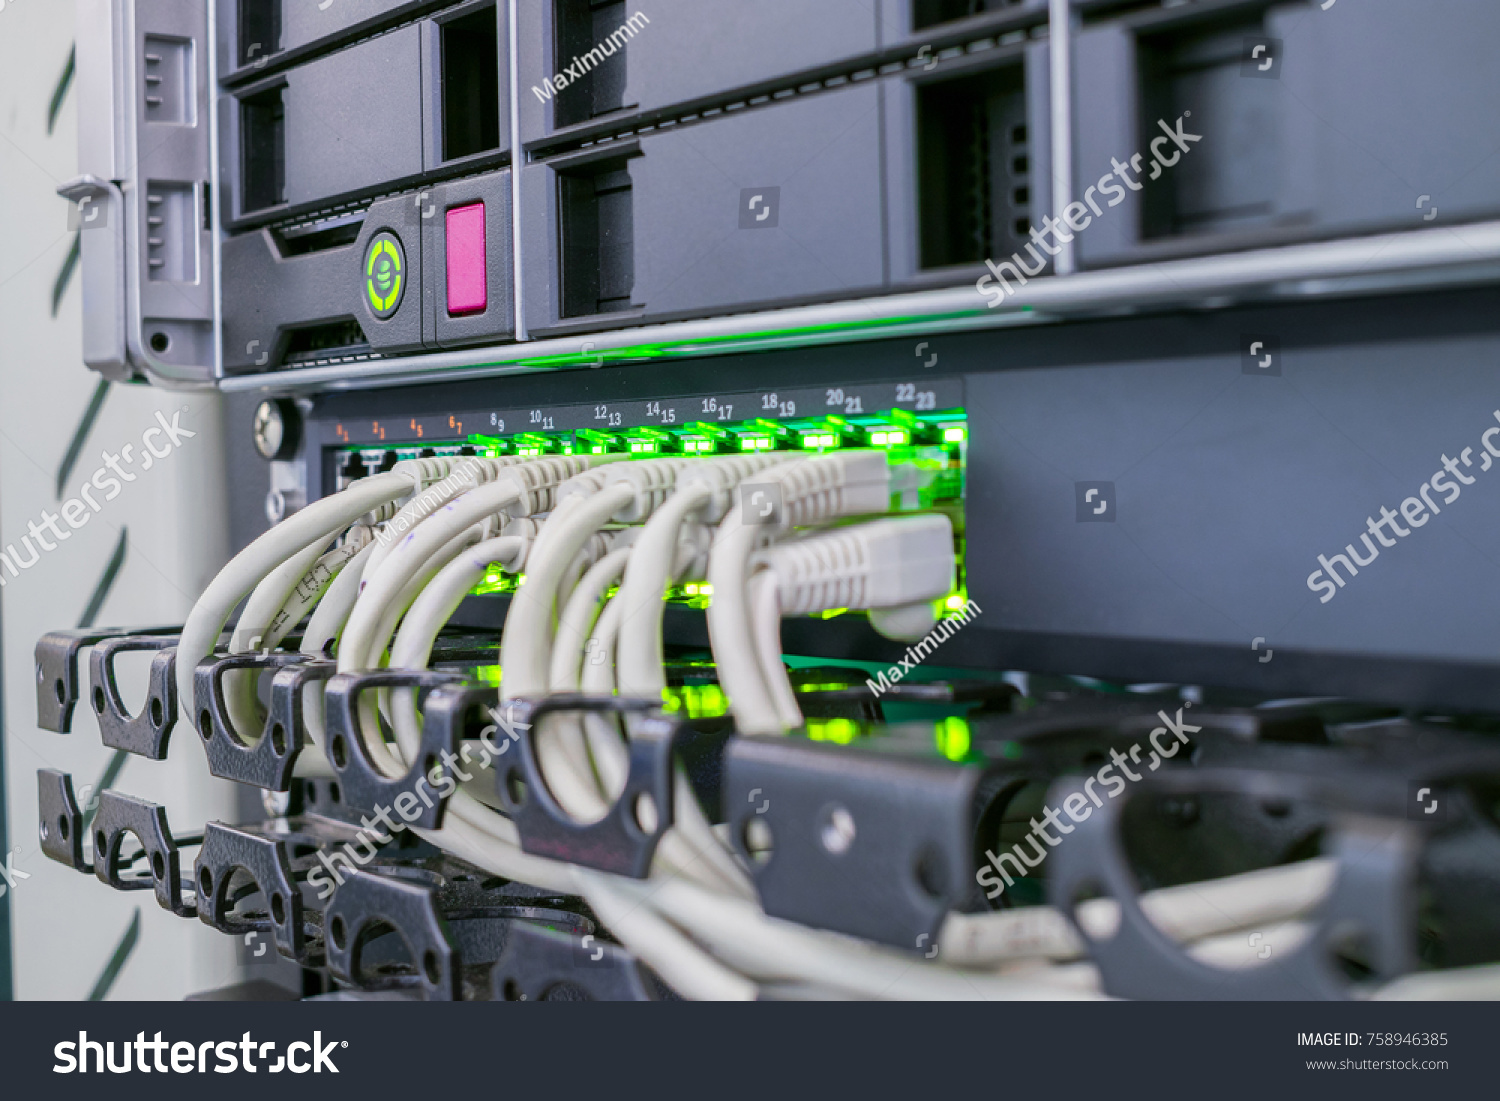 Connecting Internet Wires Computer Equipment Cabling Stock Photo Wiring A Patch Panel The With In Server Cabinet